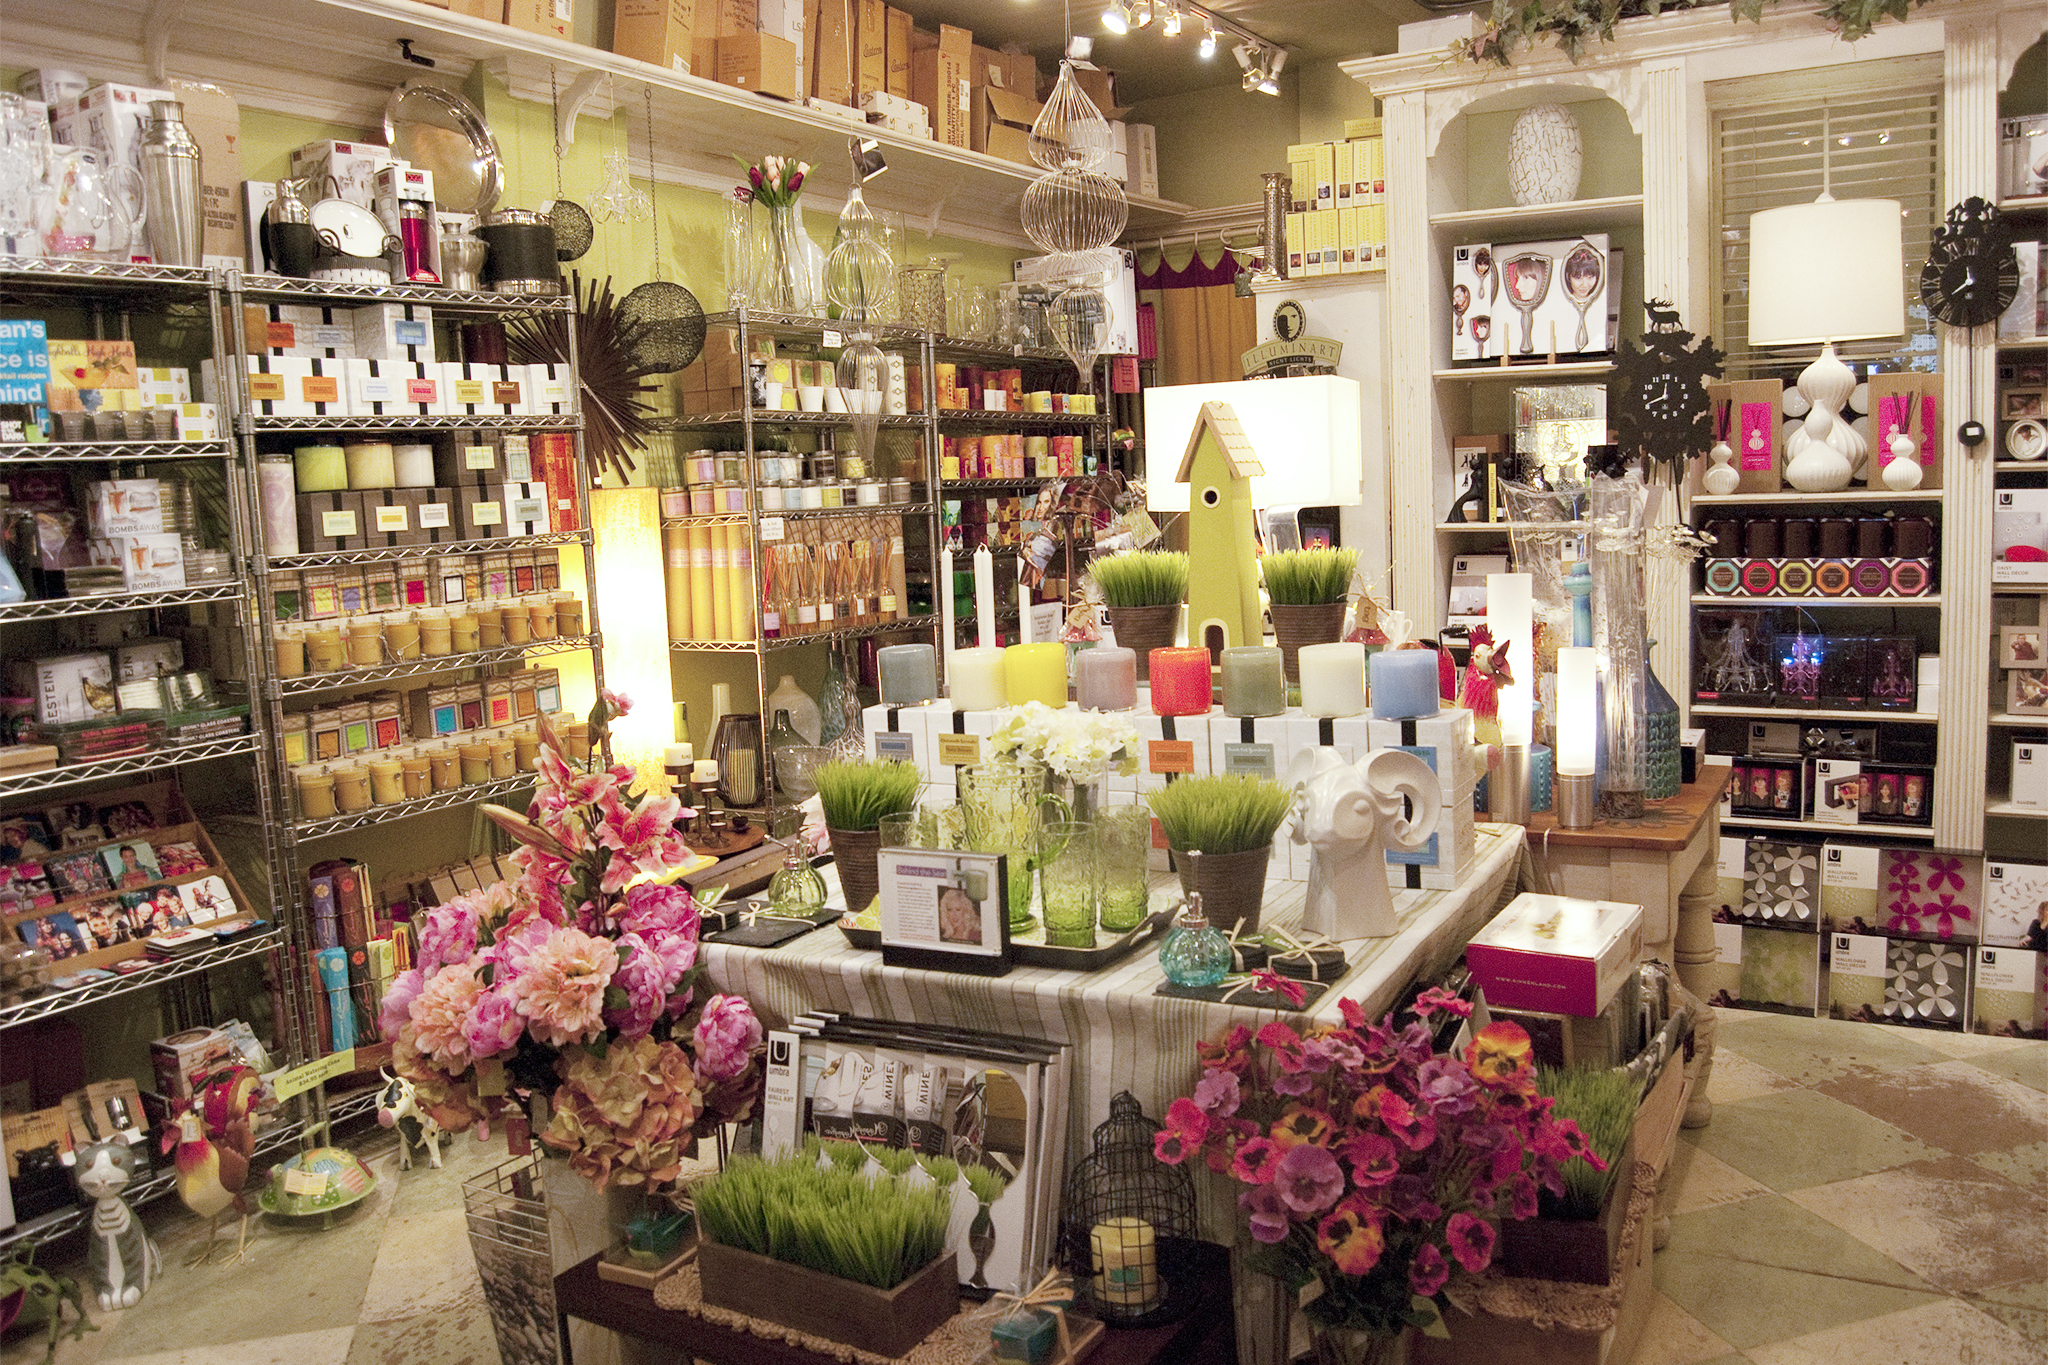 Home decor stores in nyc for decorating ideas and home furnishings delphinium home junglespirit